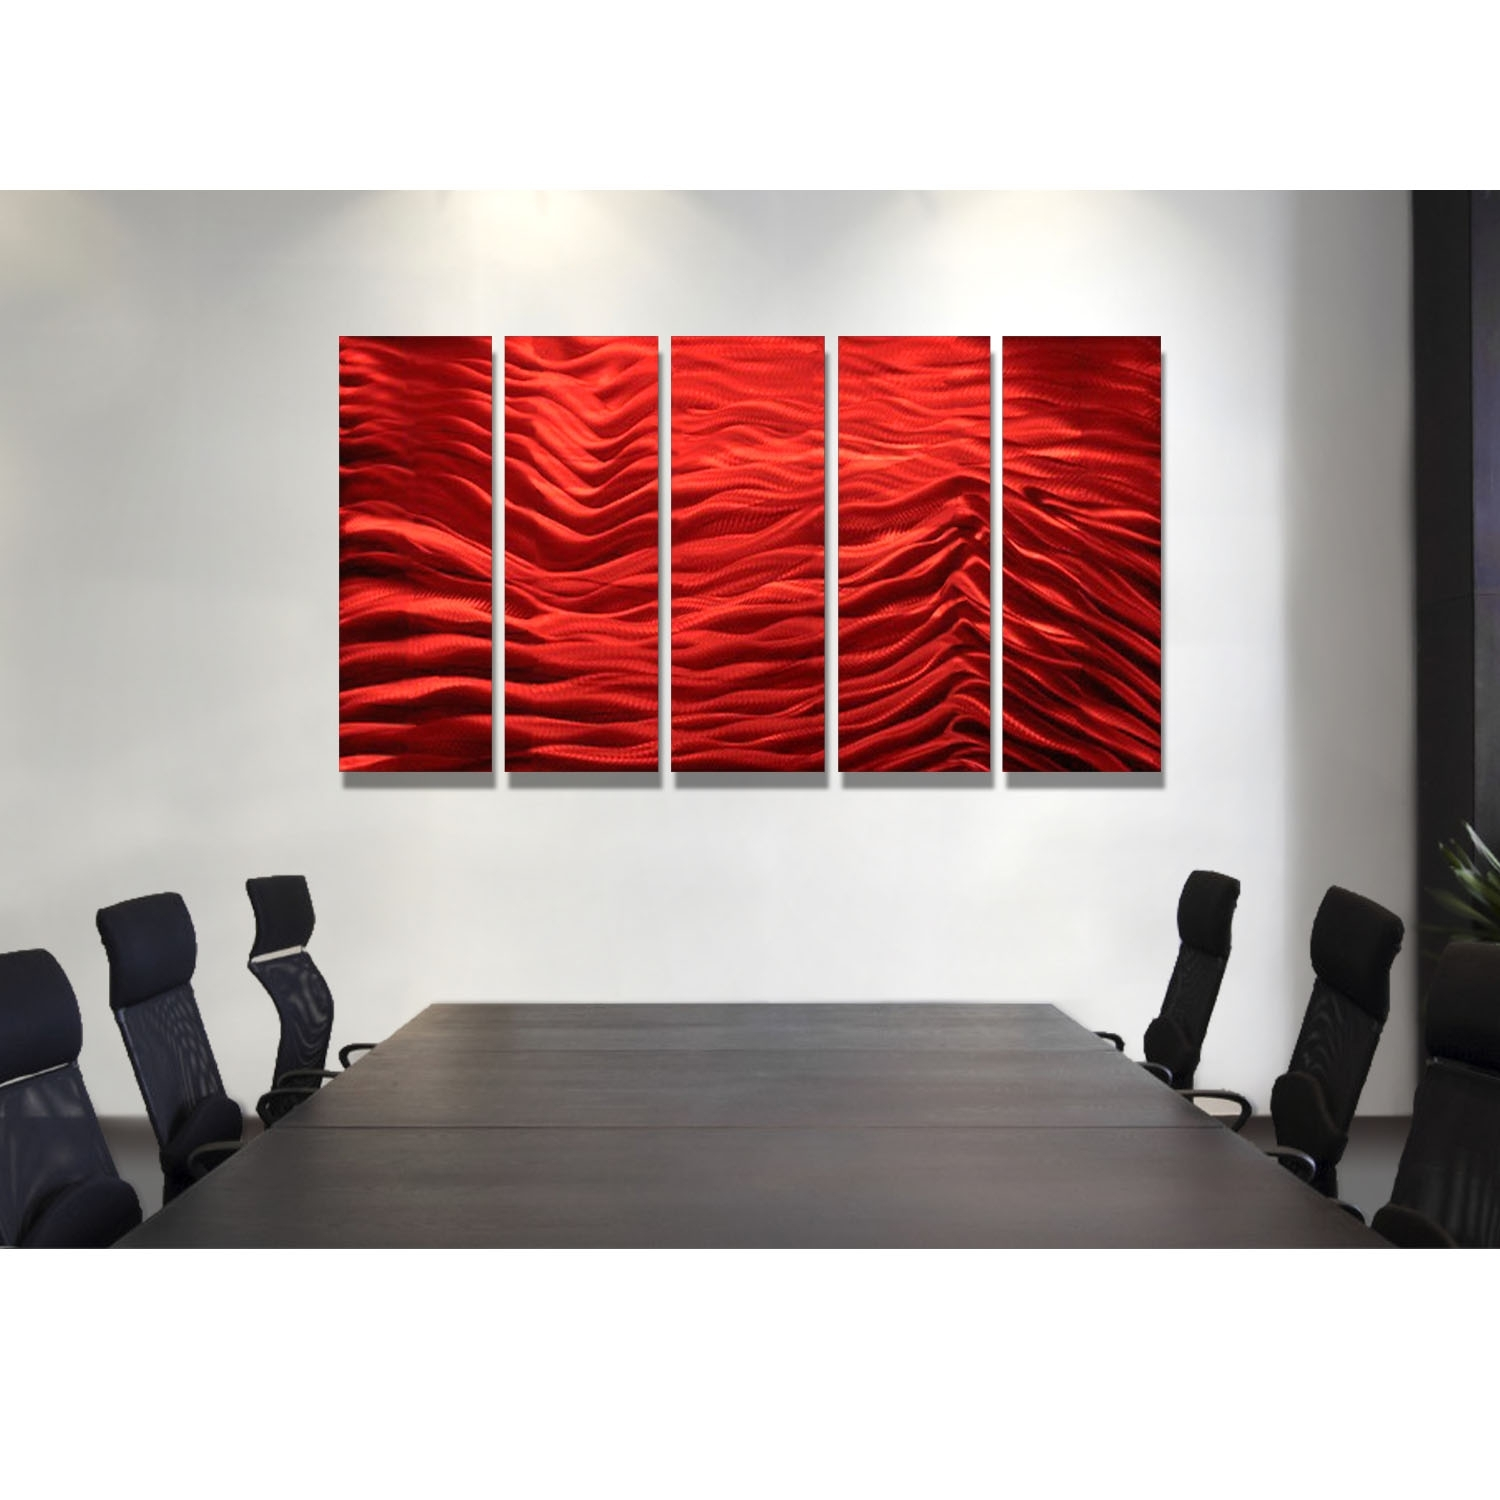 Red Inertia – Red Metal Wall Art – 5 Panel Wall Décorjon Allen Within Most Recent Panel Wall Art (Gallery 5 of 20)